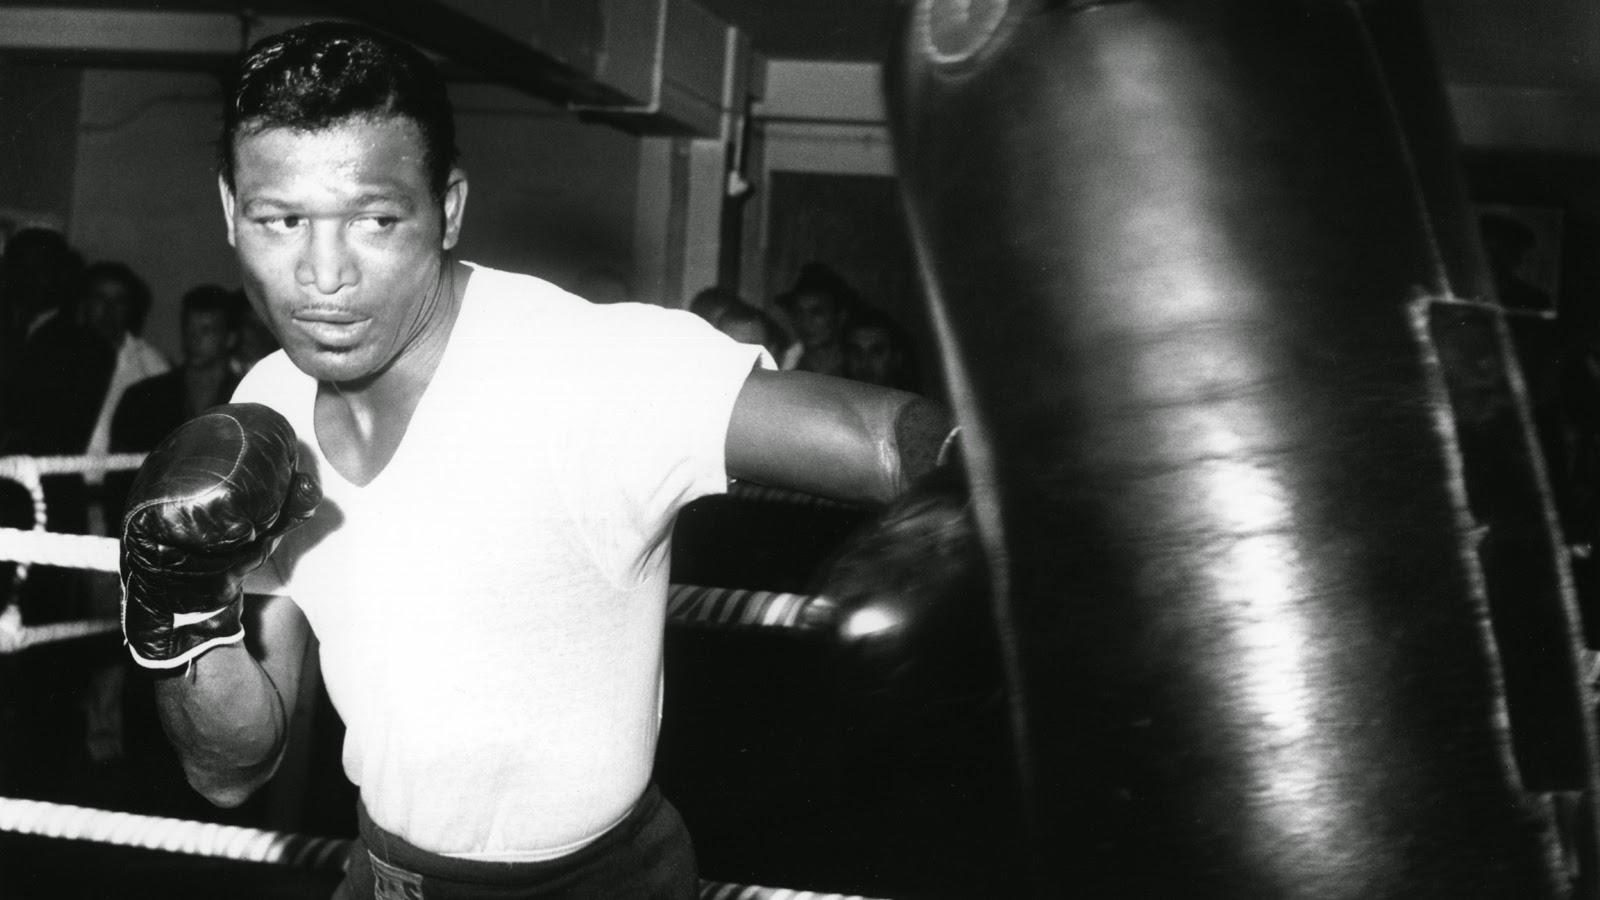 020614-BOXING-sugar-ray-robinson-LN-CQ - The Fight CityThe Fight City